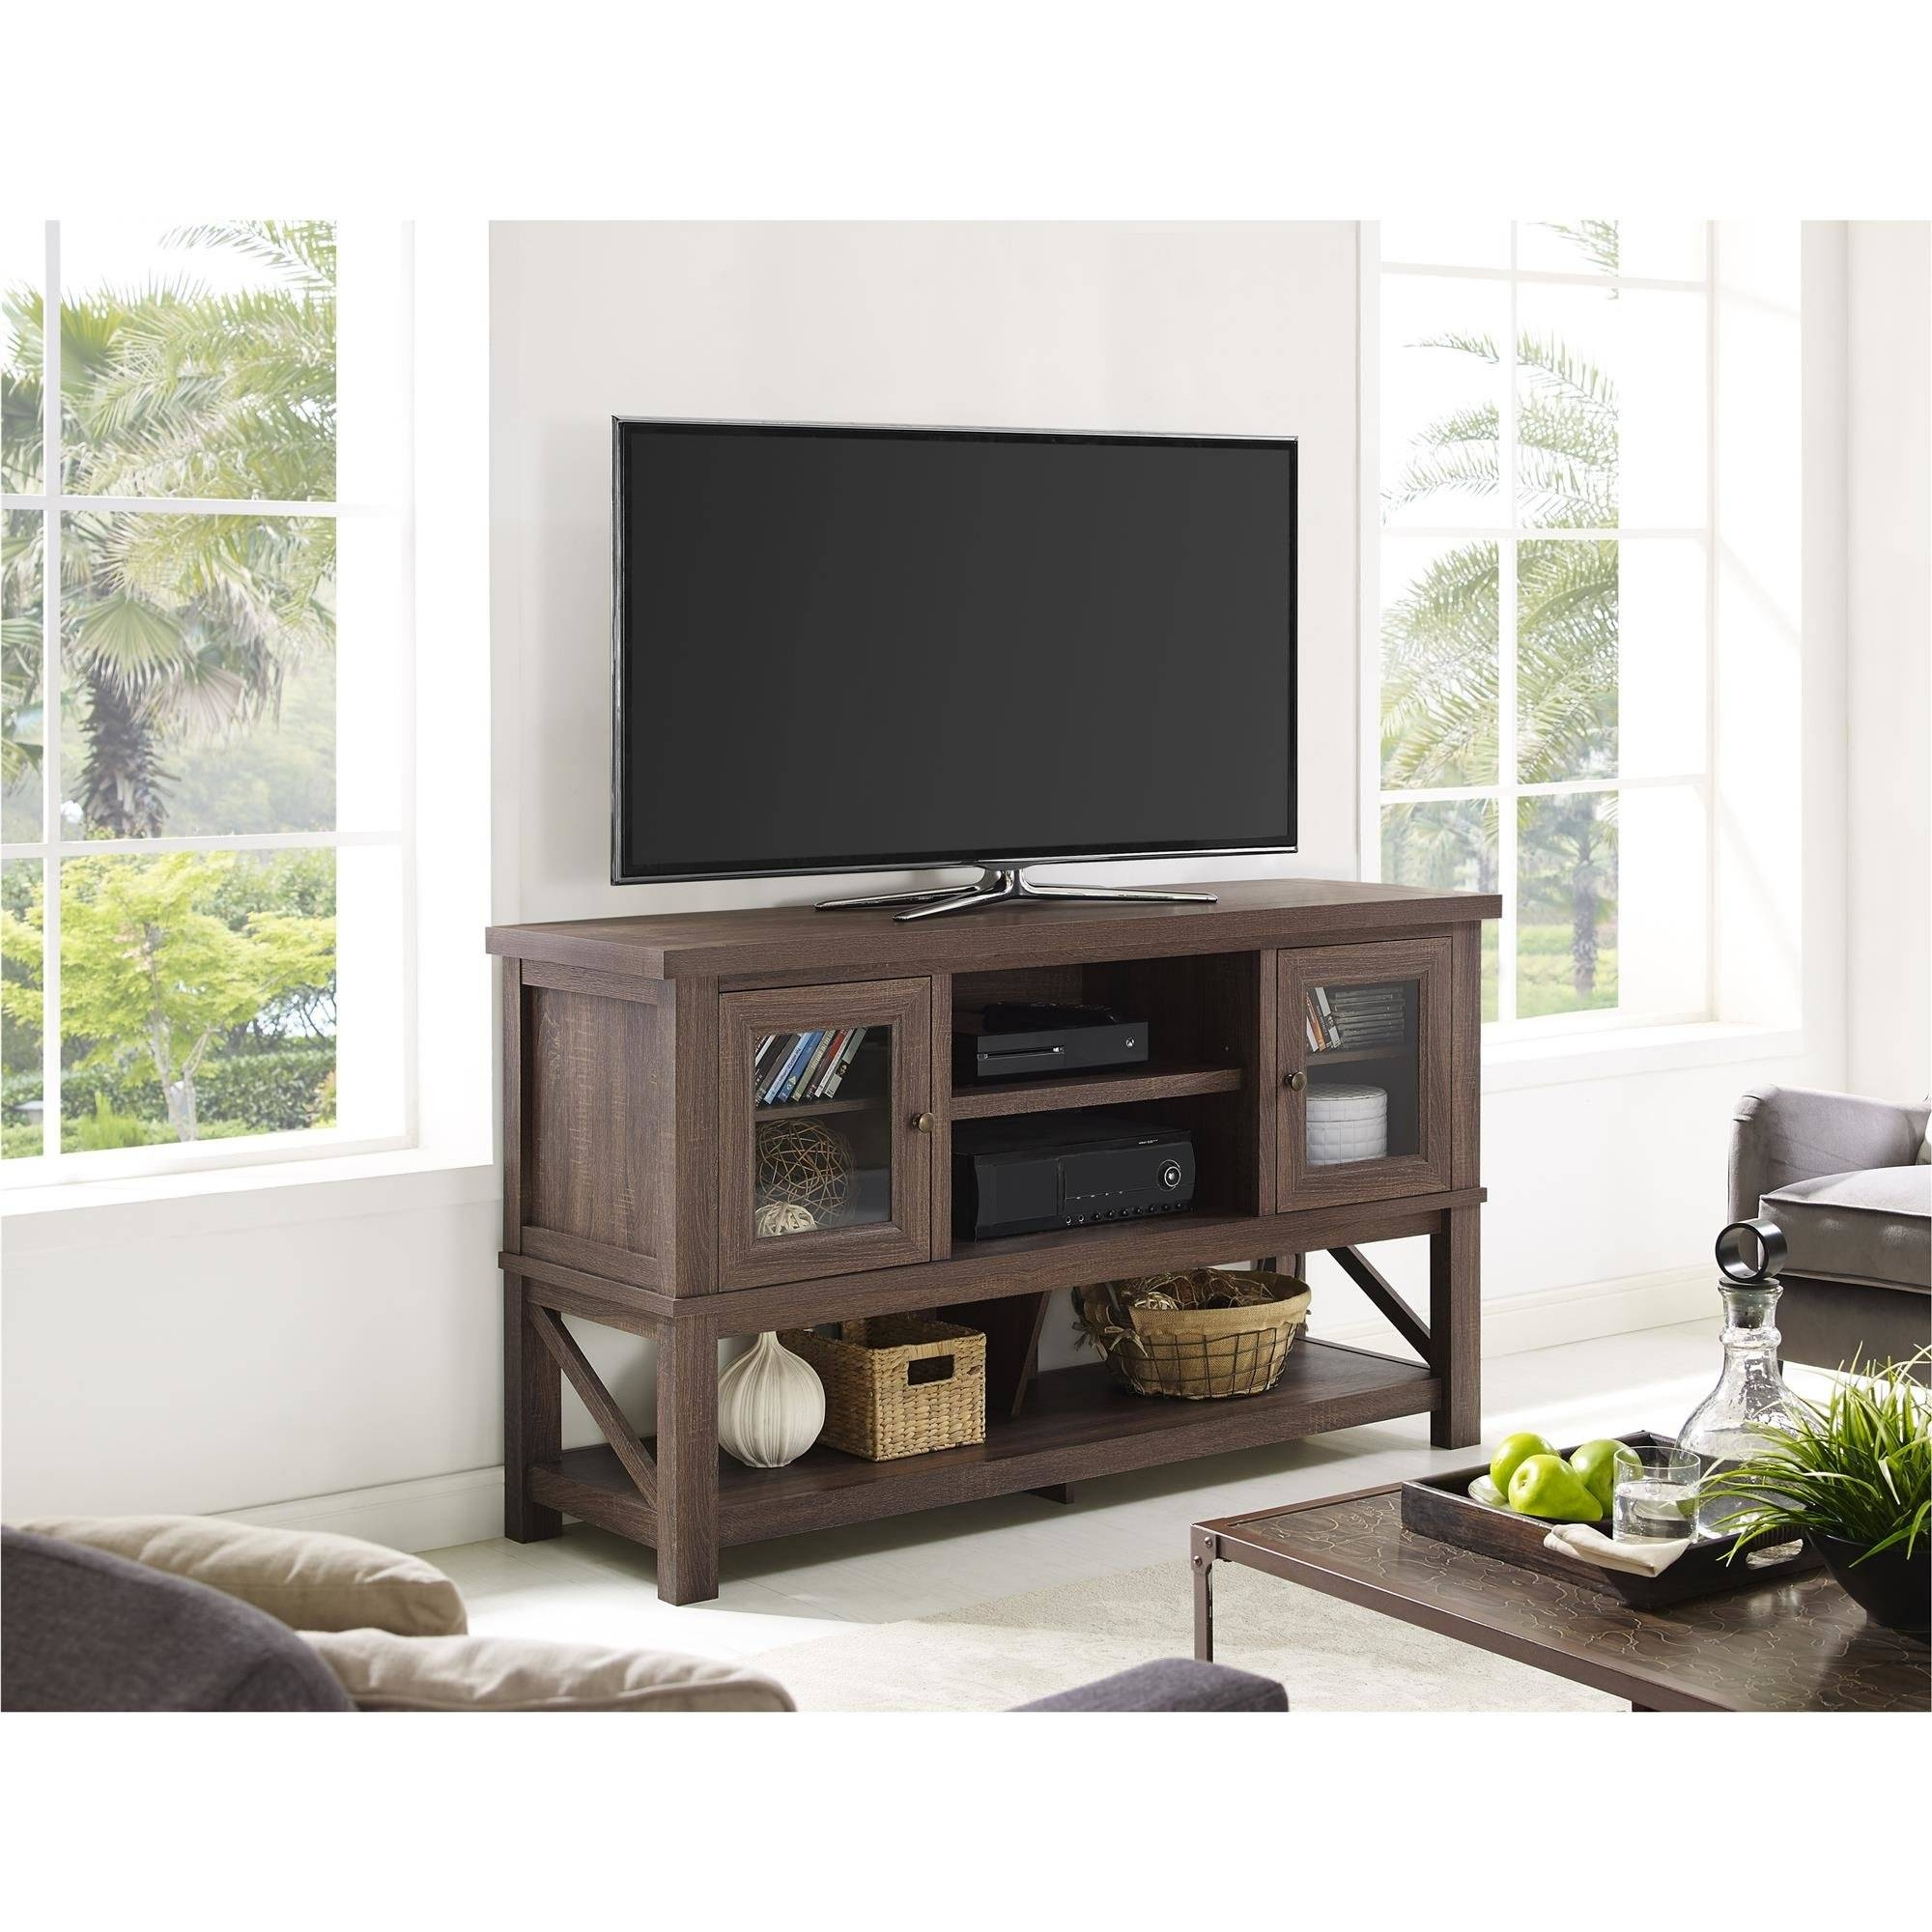 Stylish Coffee Tables And Tv Stands Accent Tables Coffee Table And for Coffee Tables And Tv Stands (Image 18 of 30)